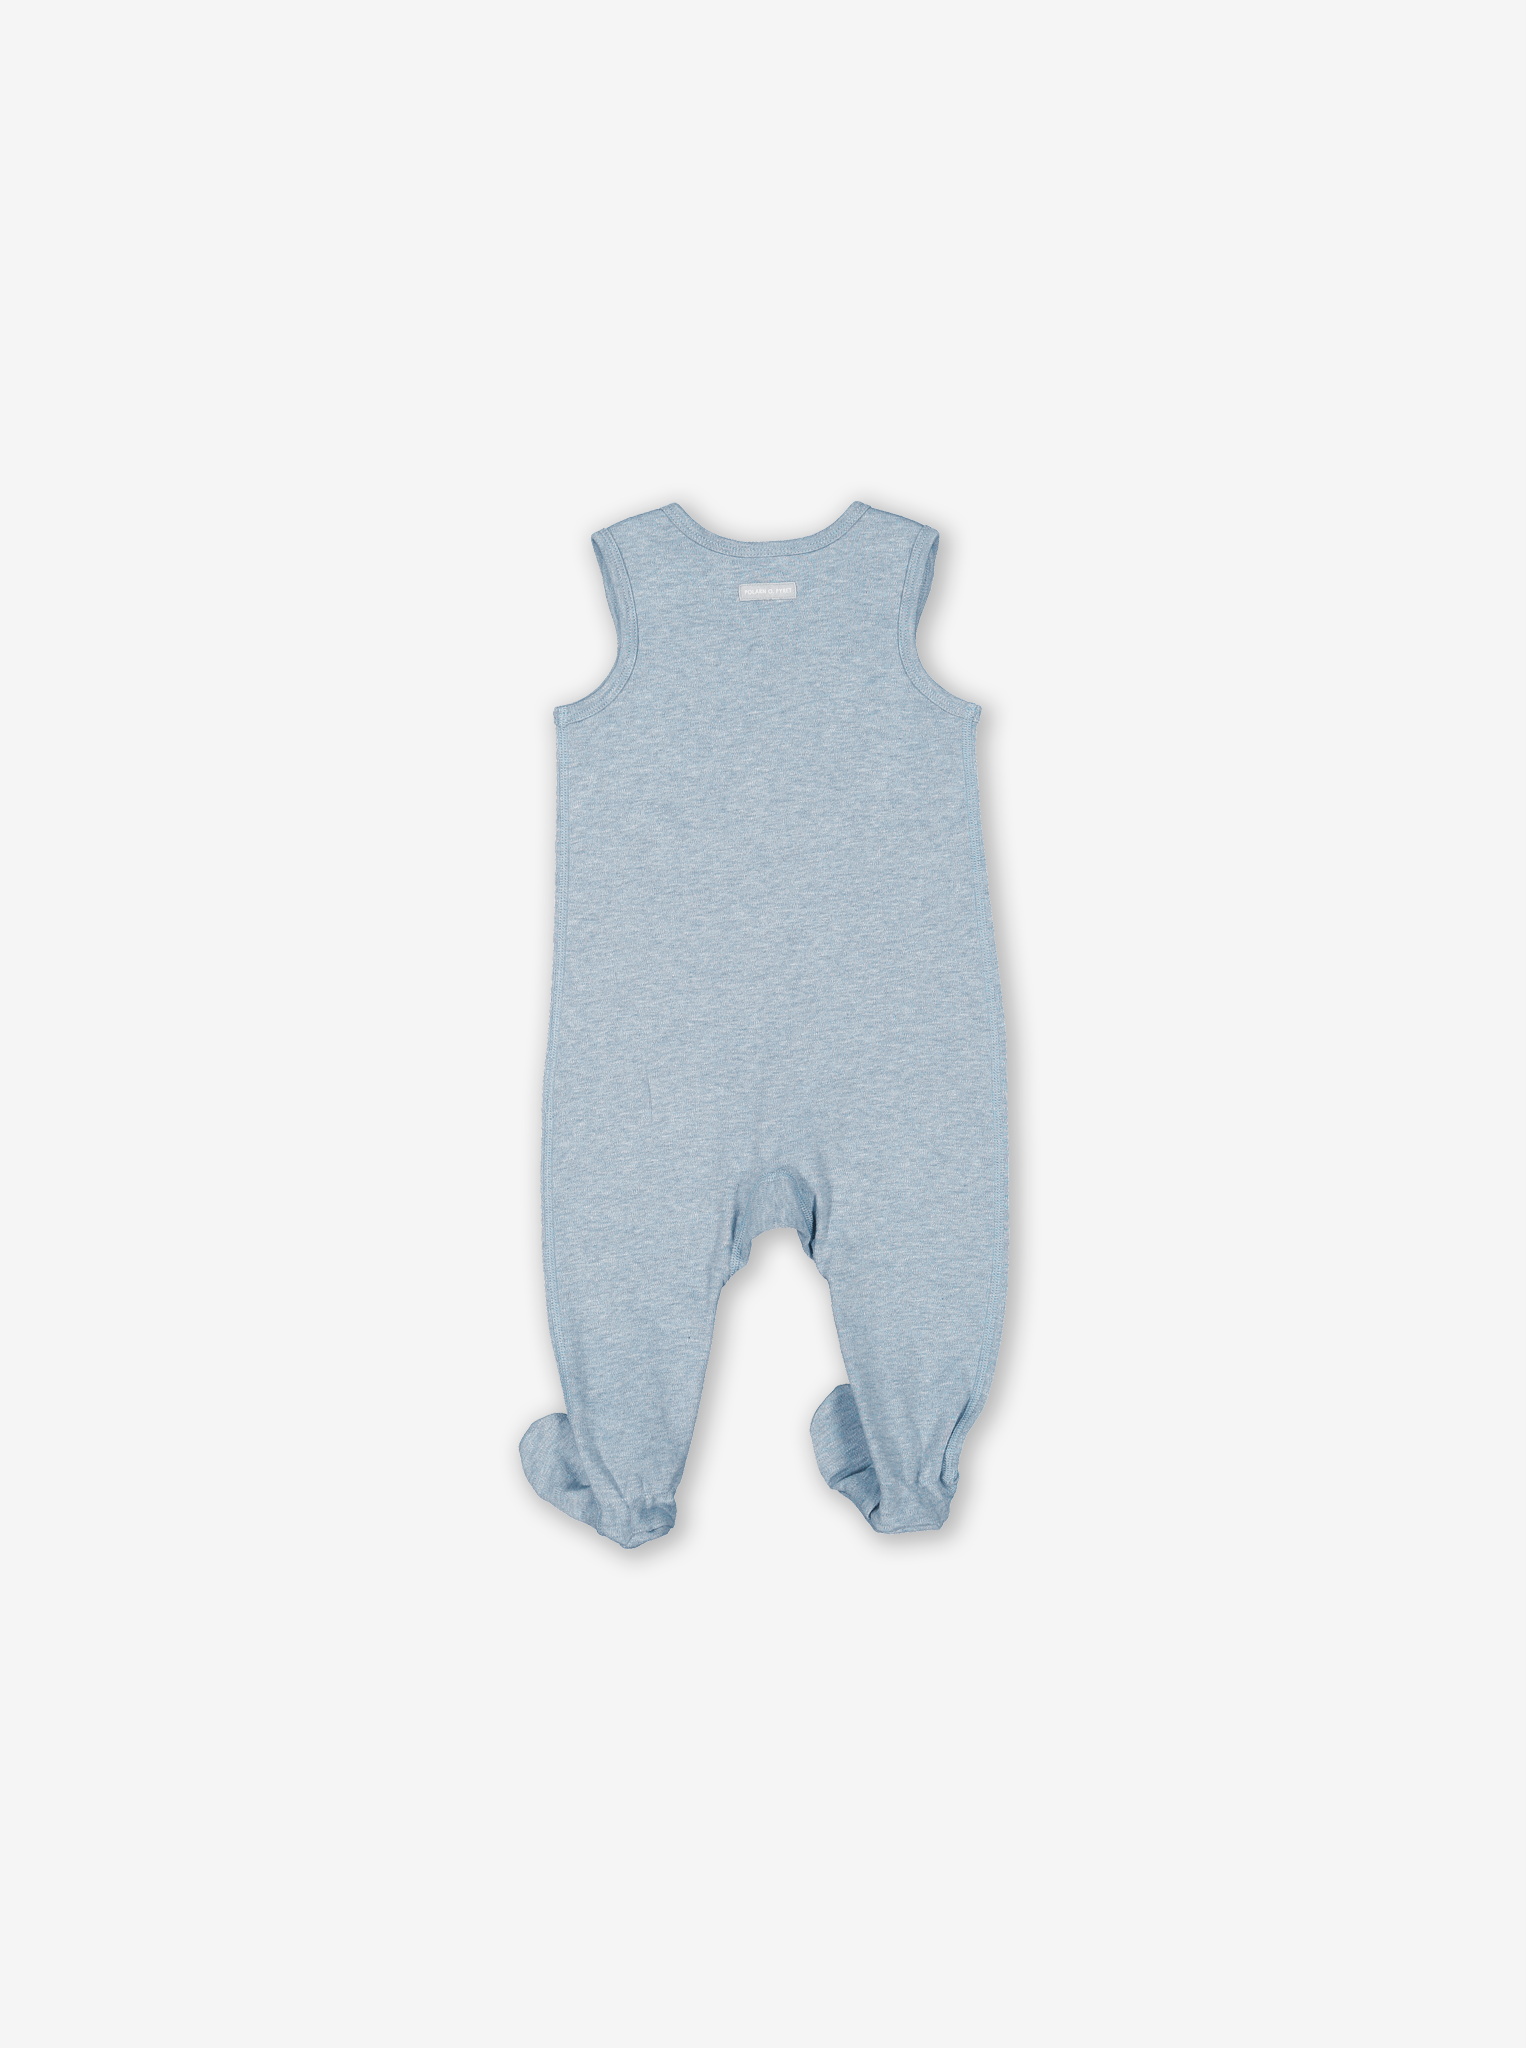 Embroidered Toys Baby Romper Blue